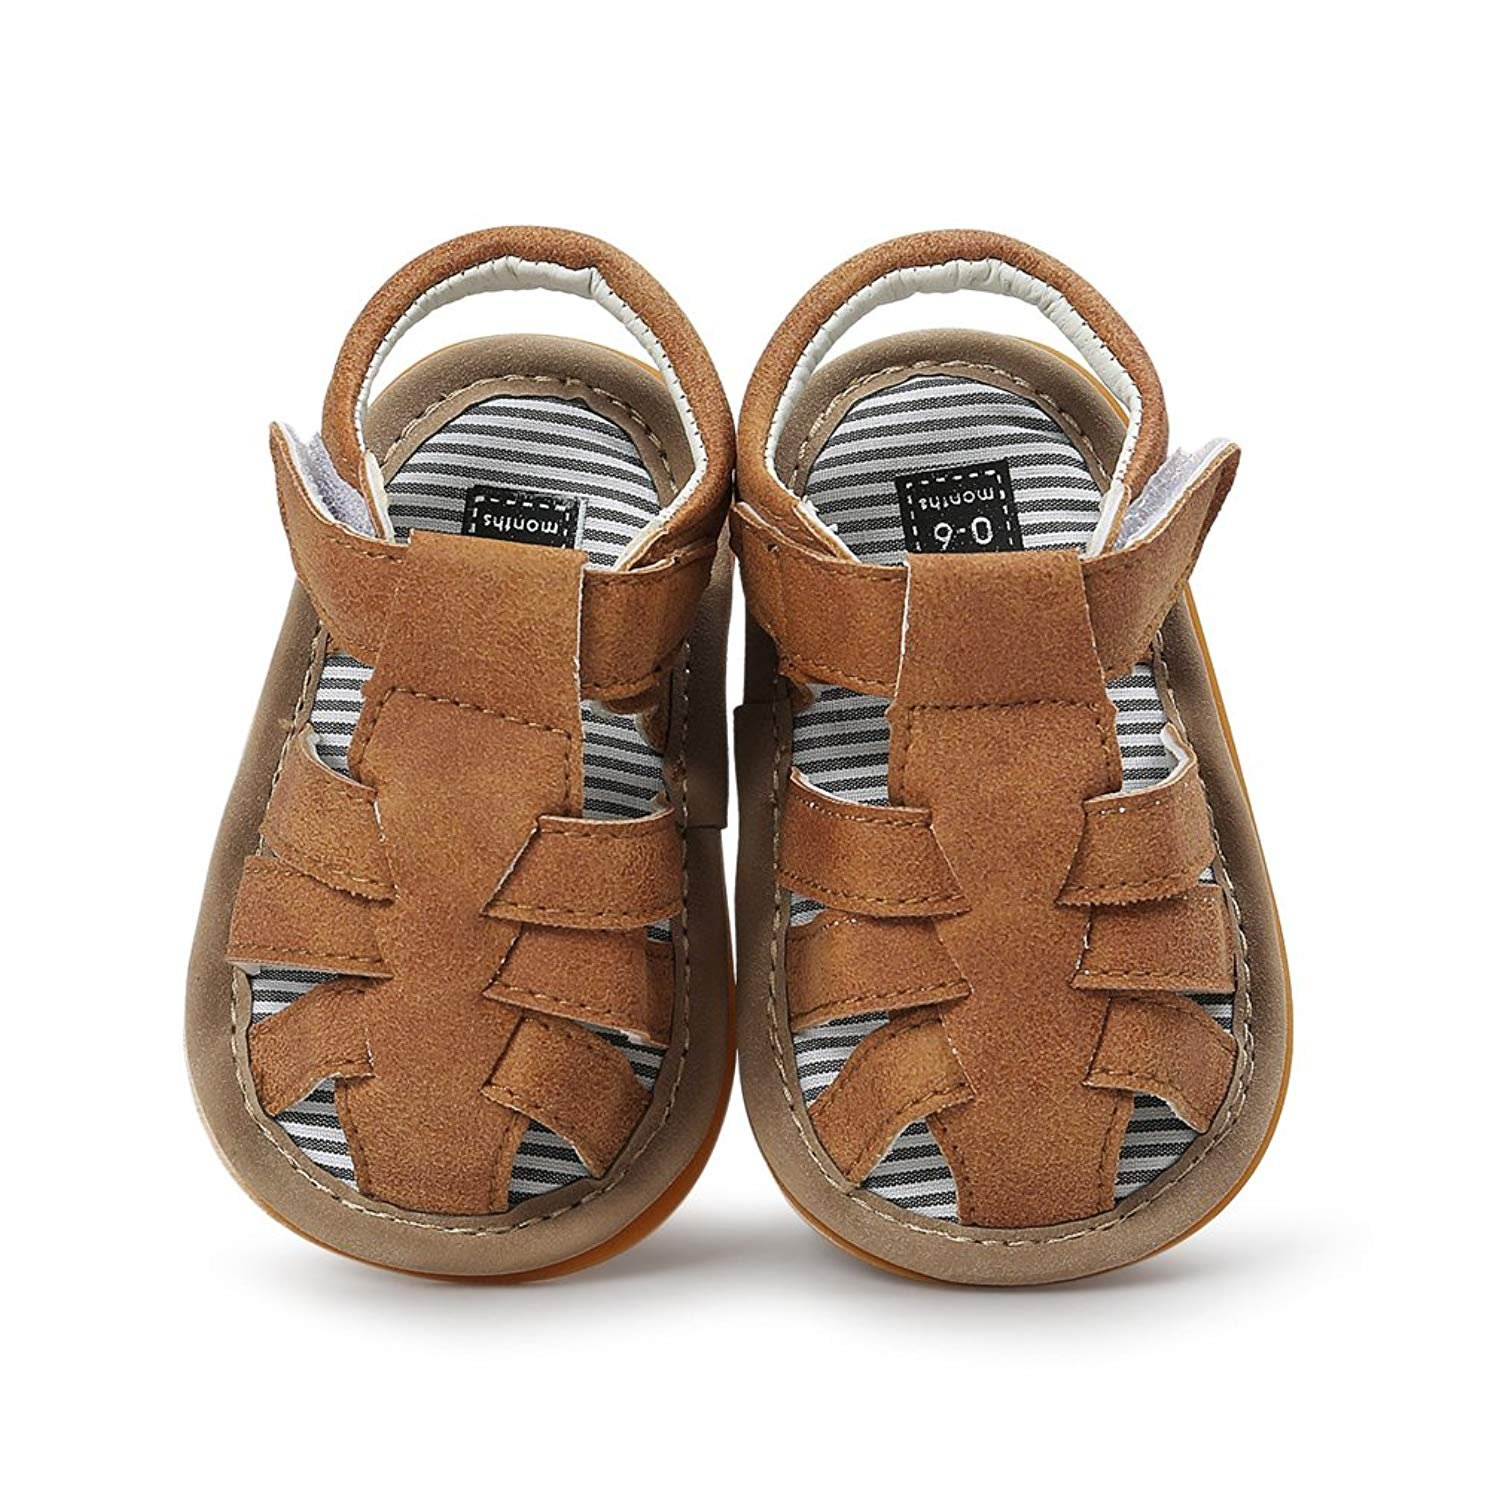 Baby Leather Moccasins, Infant Baby Boys Girls PU Leather Rubber Sole Summer Sandals First Walkers